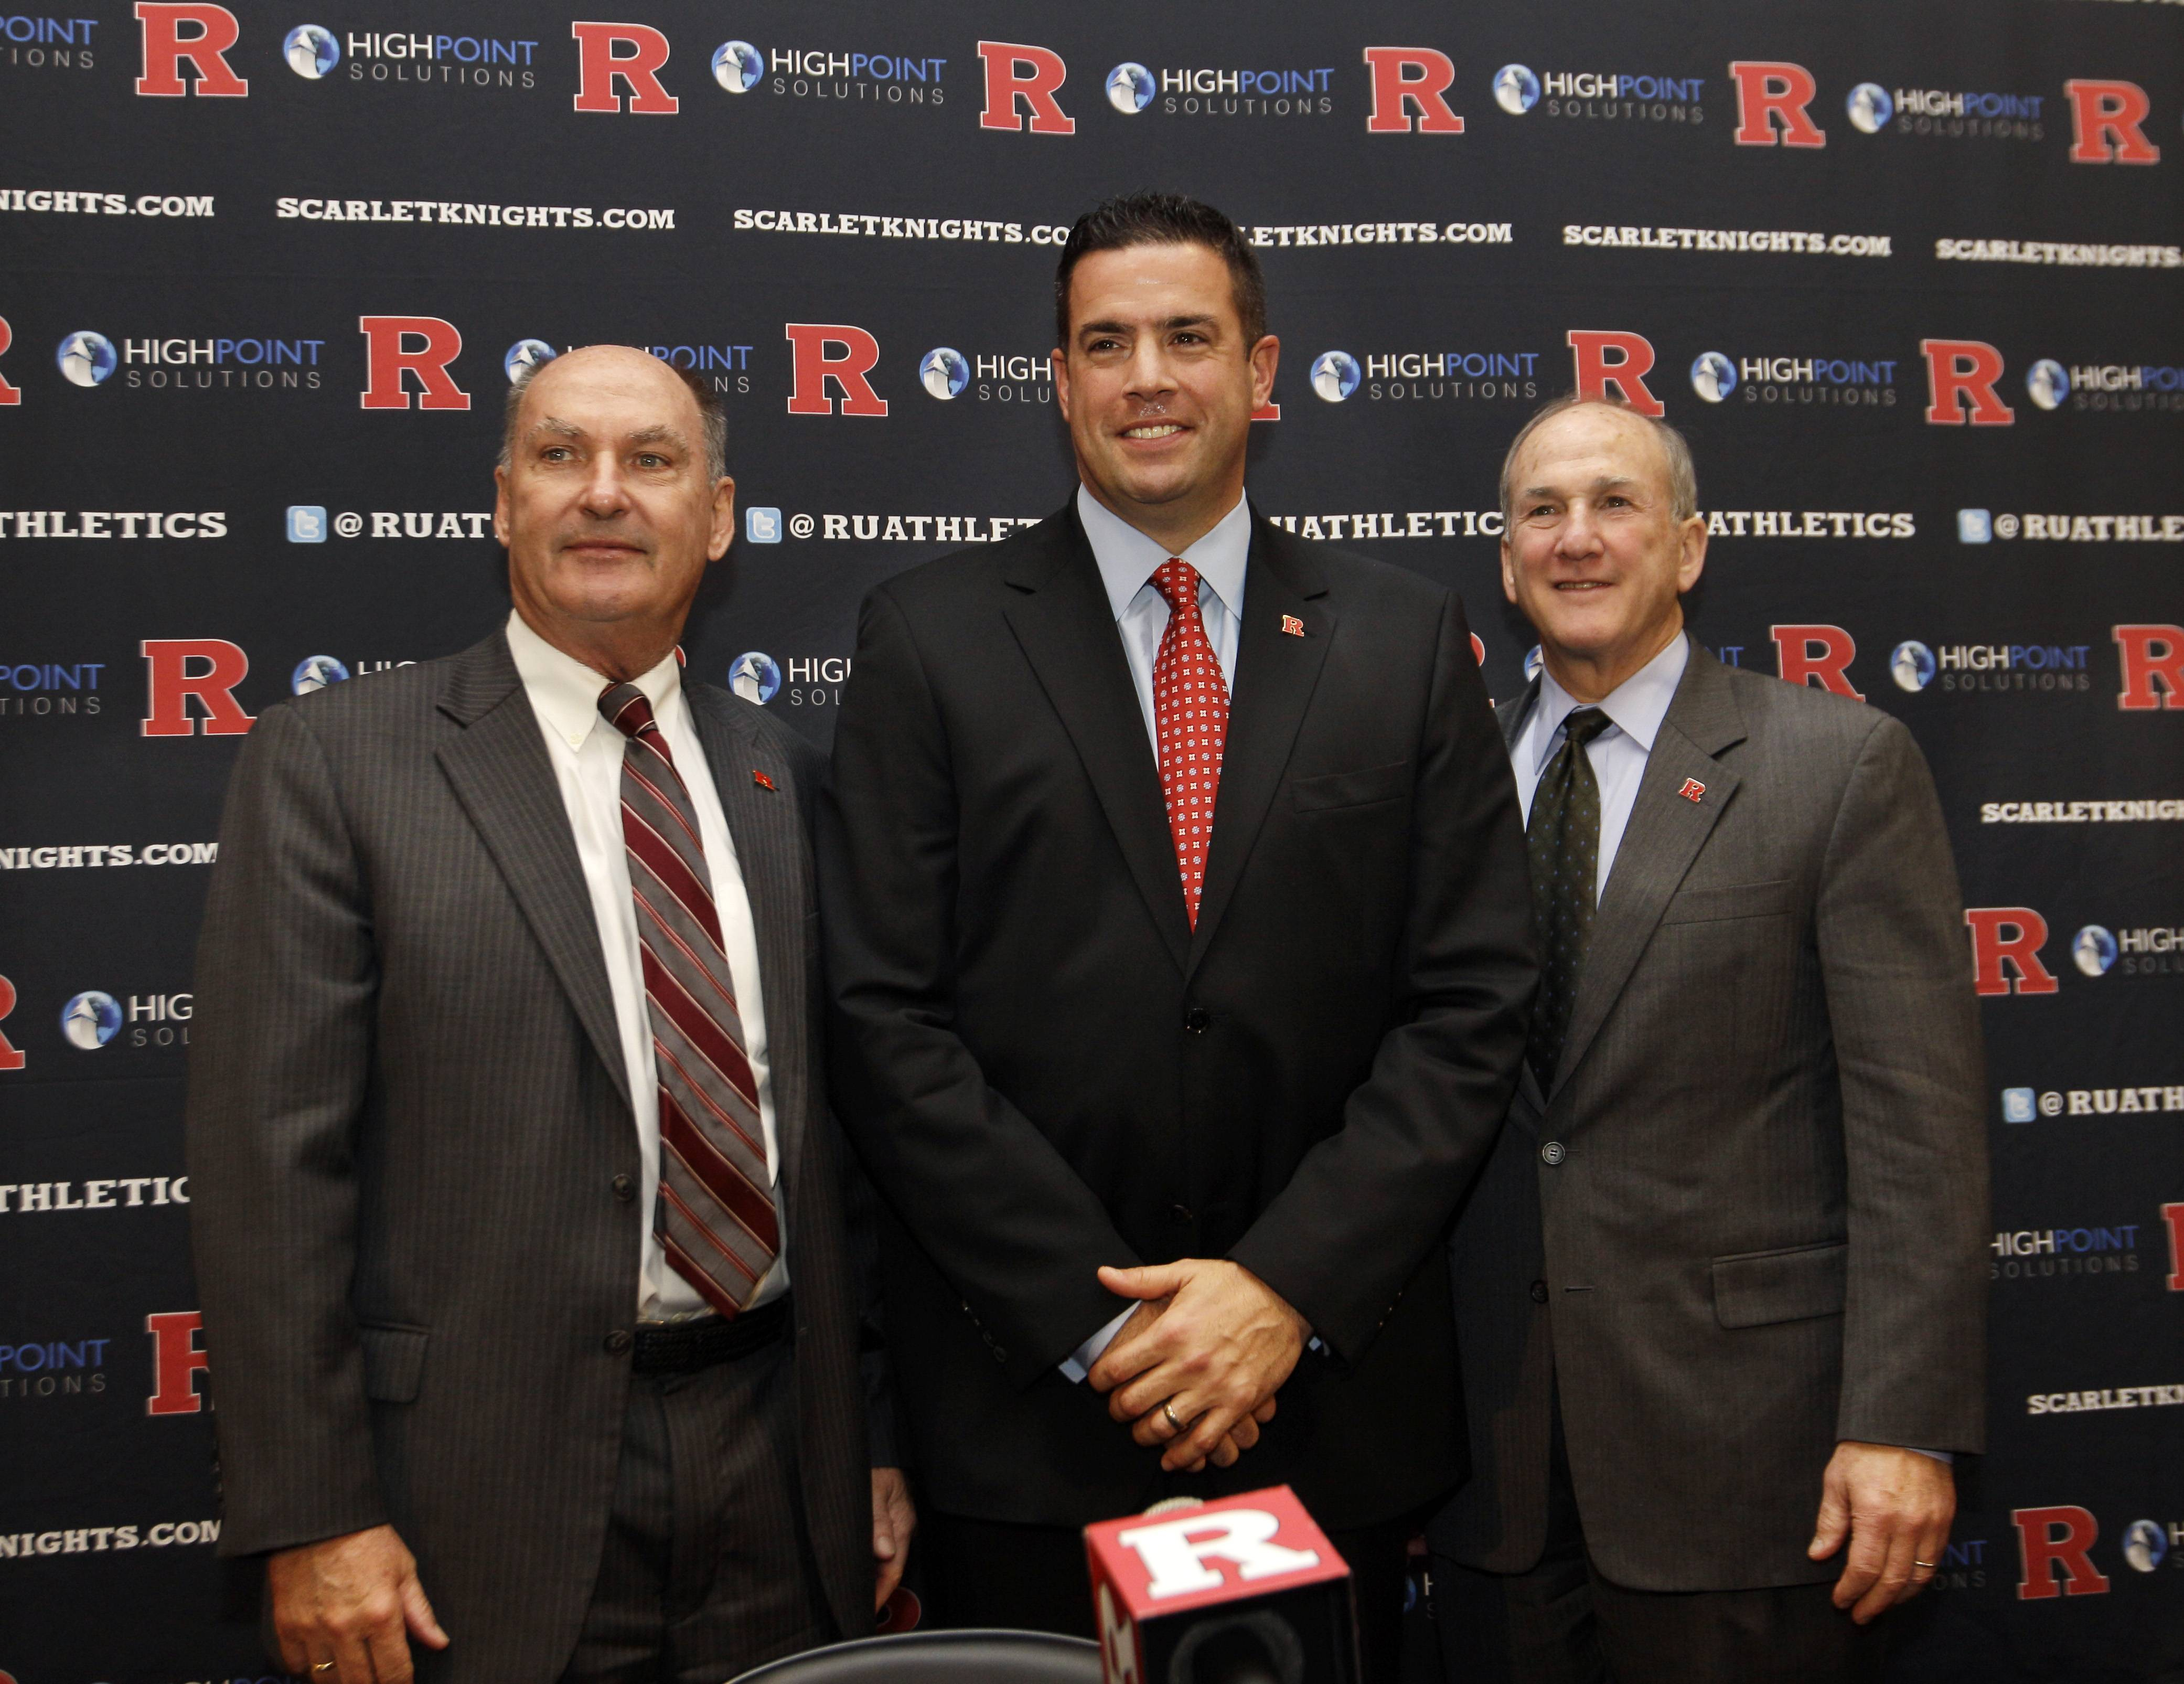 Rutgers Director of Intercollegiate Athletics Tim Pernetti, center, stands with Rutgers President Robert Barchi, right, and Big Ten Conference Commissioner Jim Delany during a news conference Tuesday in Piscataway, N.J., after they announced that Rutgers will join the Big Ten. Rutgers will join the conference in all sports at a date to be determined.